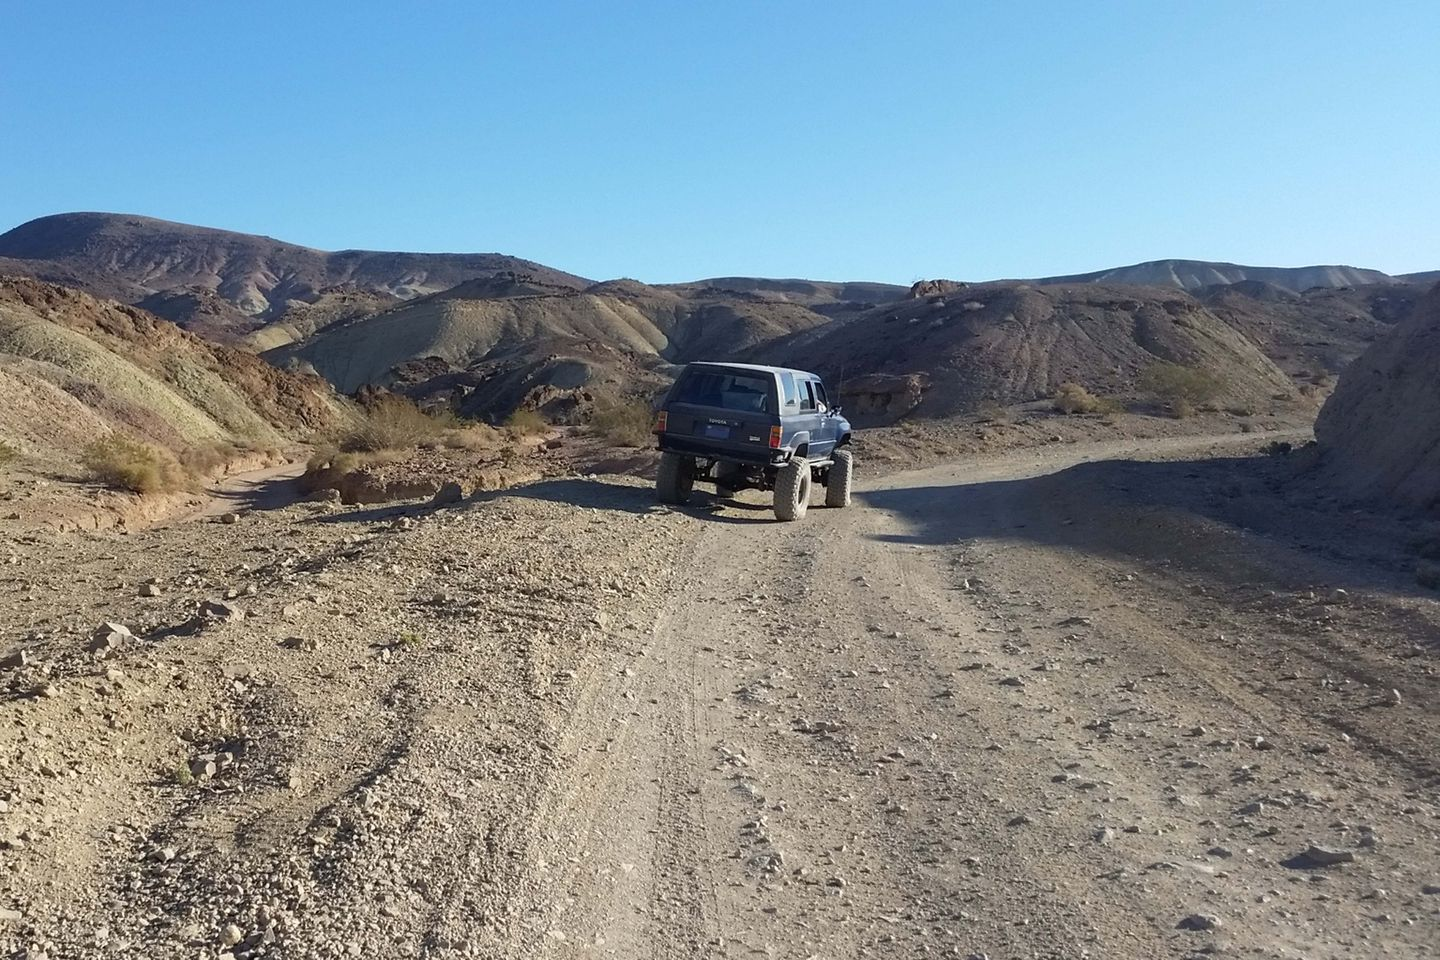 Mule Canyon - Waypoint 3: Phillip Canyon East